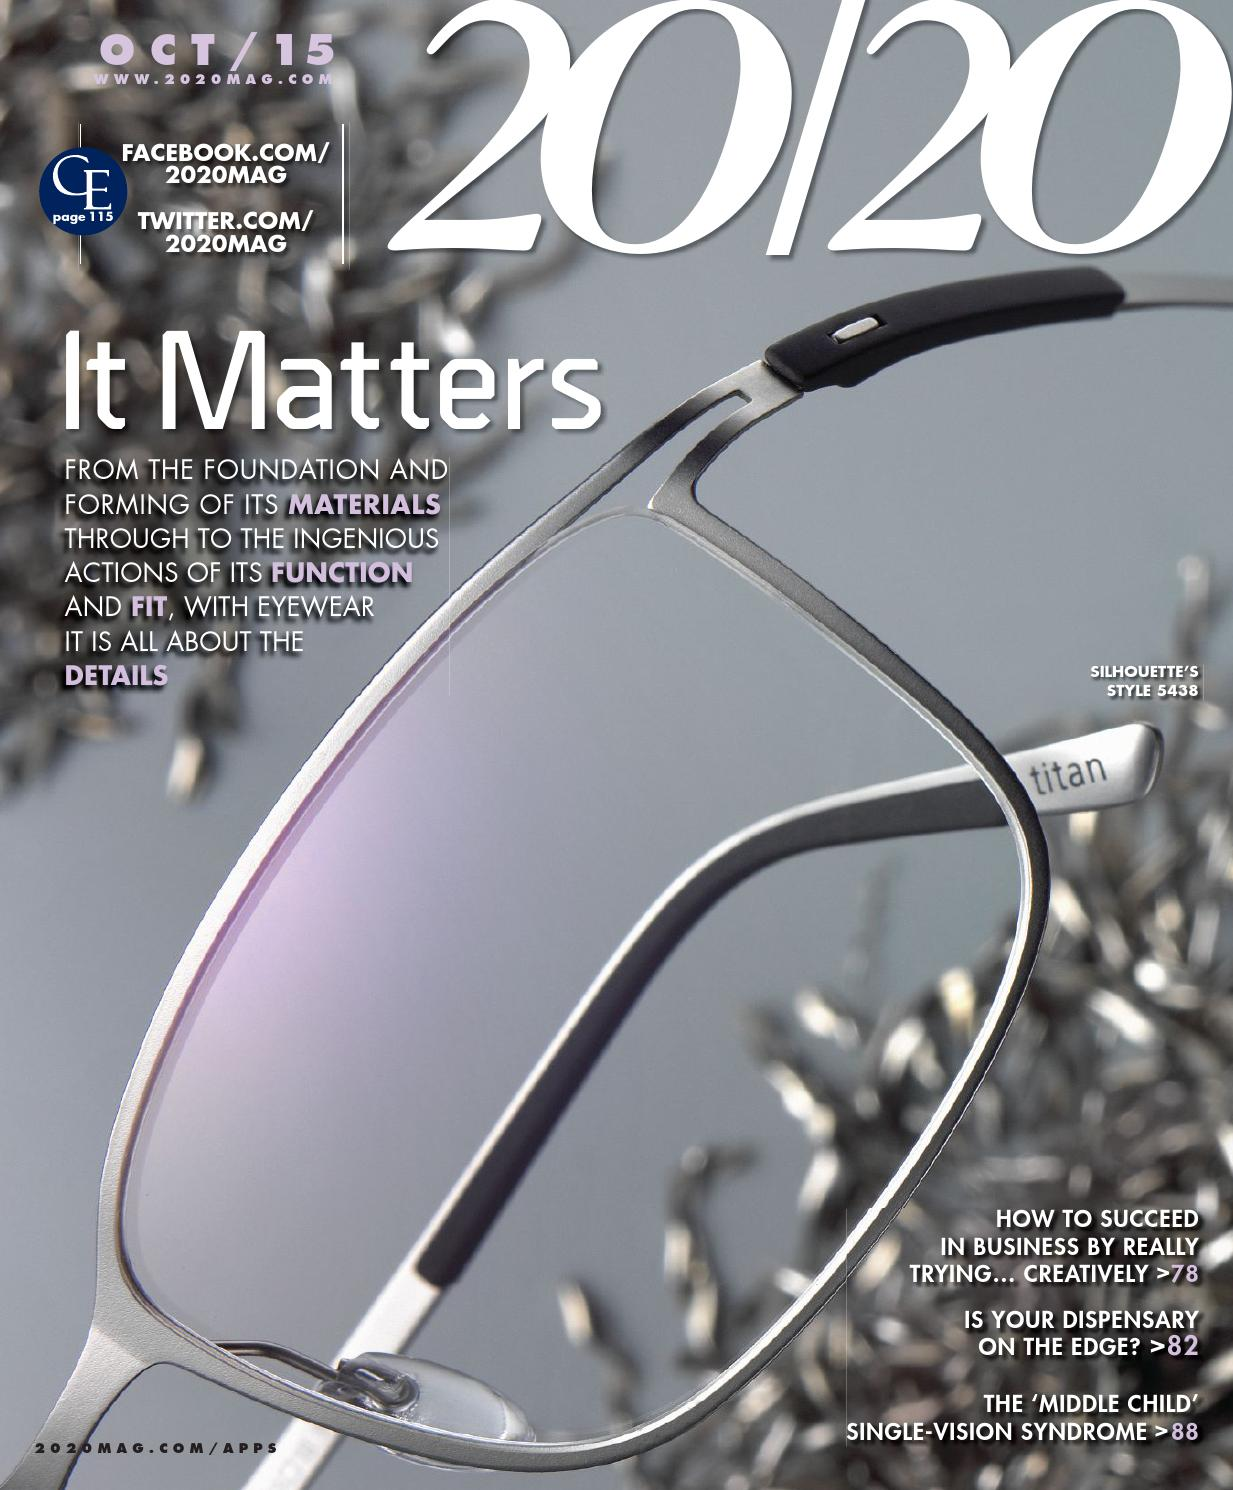 46a6835247 2020 2015 10(October) eyewear by Franky wong - issuu